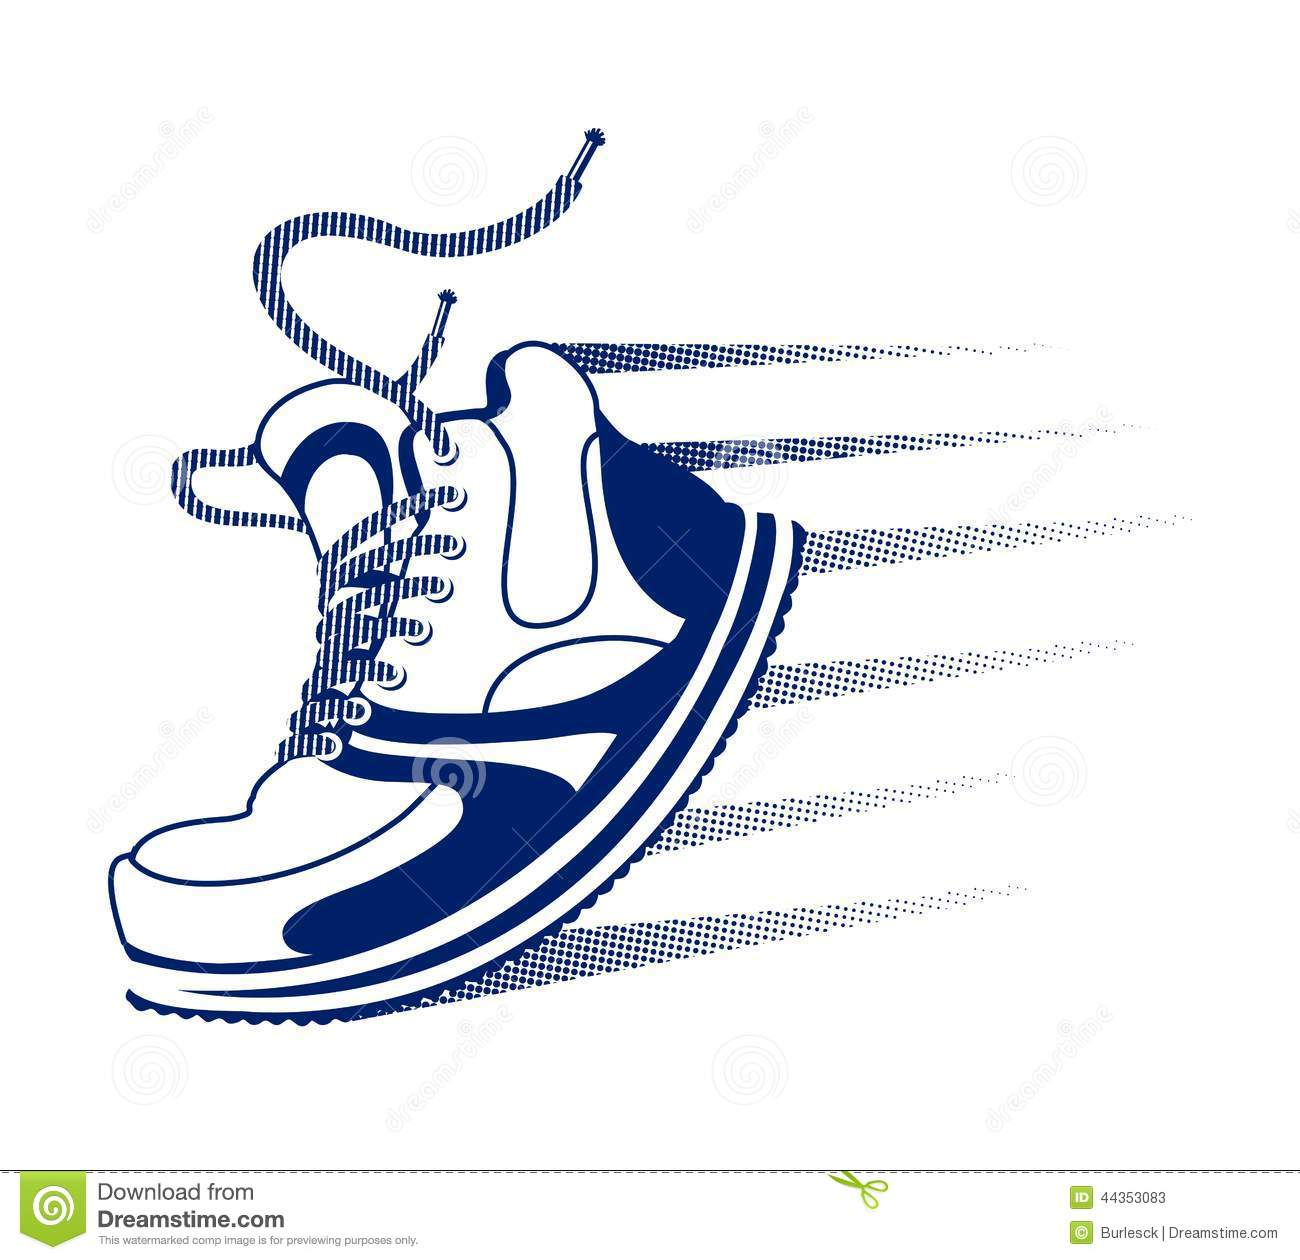 How To Find The Best Running Shoe For My Foot